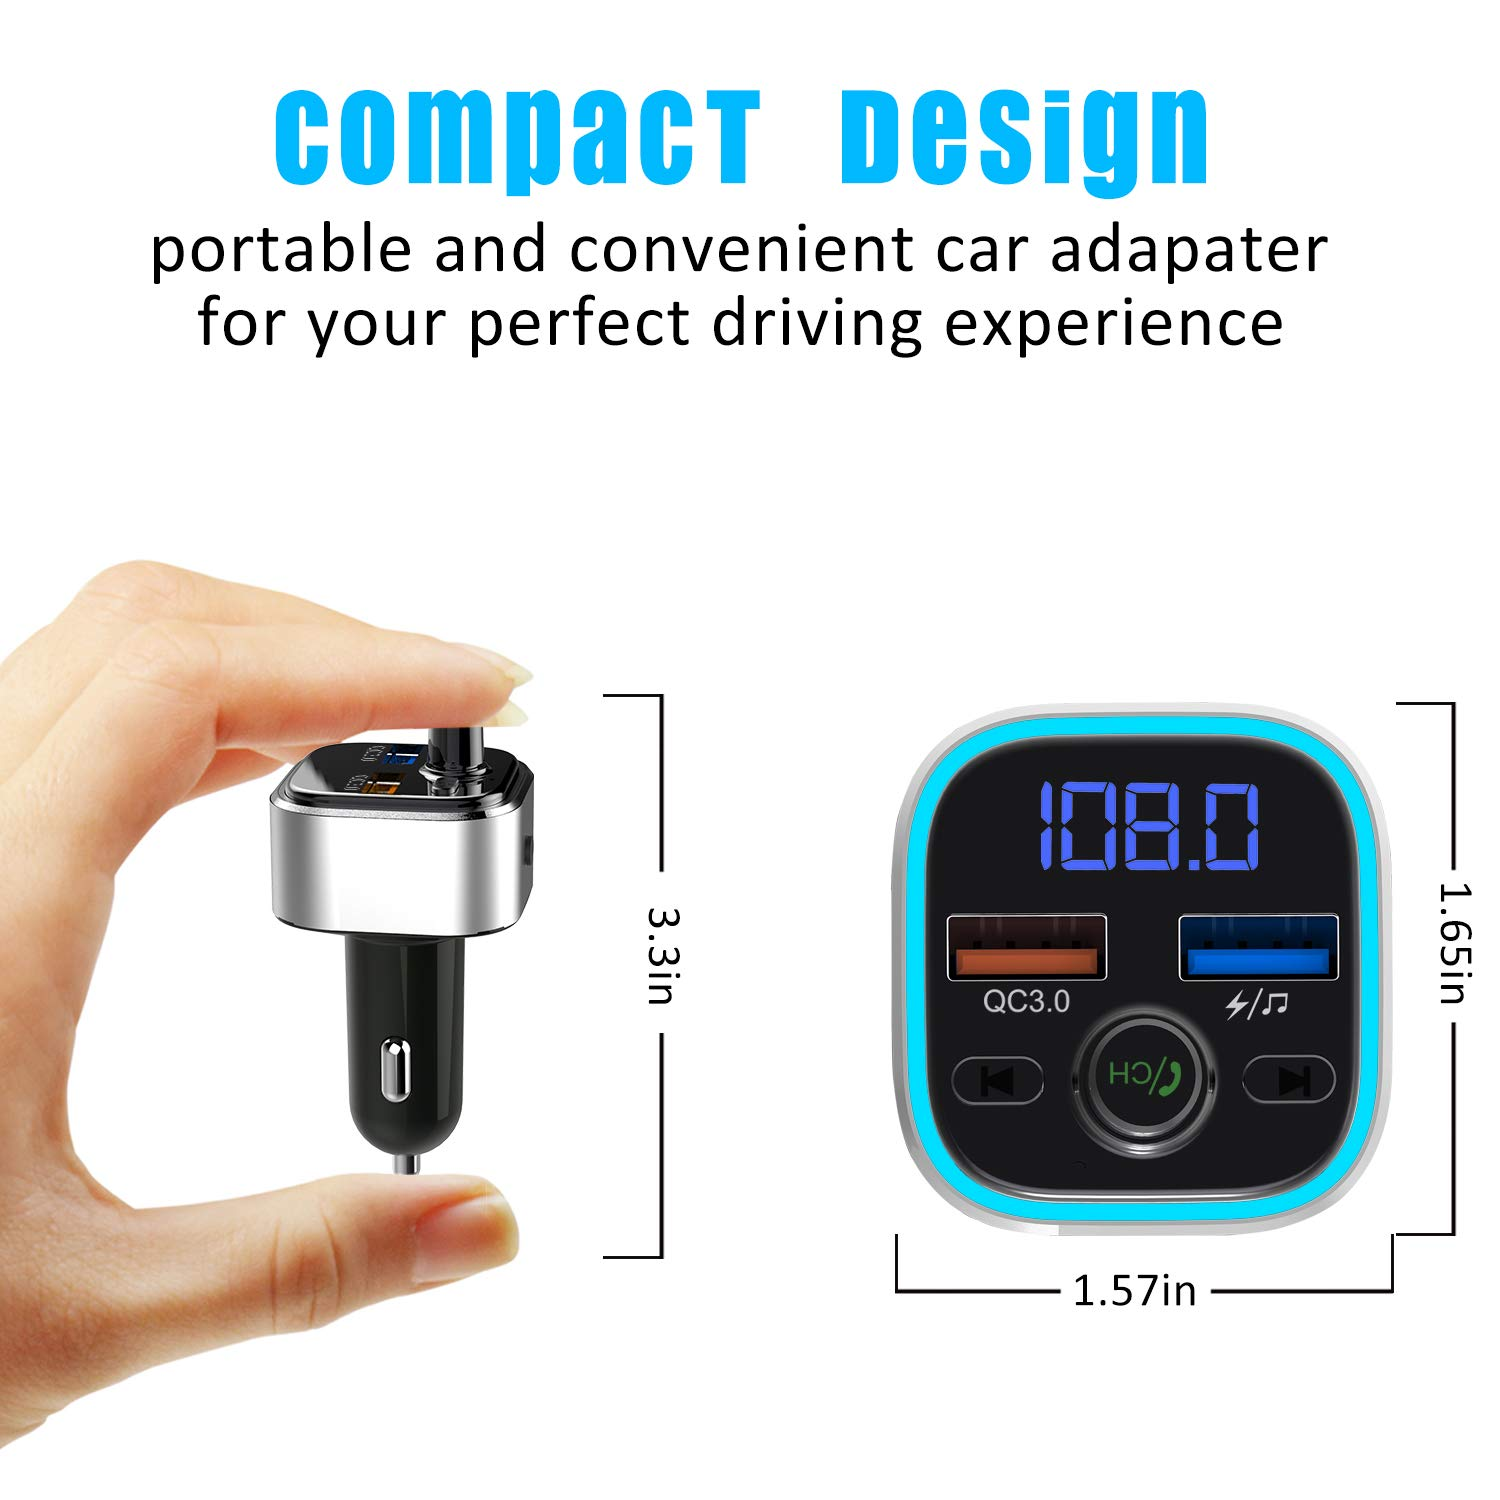 Quick Charge 3.0 USB Wireless Radio Transmitter Adapter Support USB Flash Drive microSD Card Bluetooth FM Transmitter for Car Handsfree Car Kit